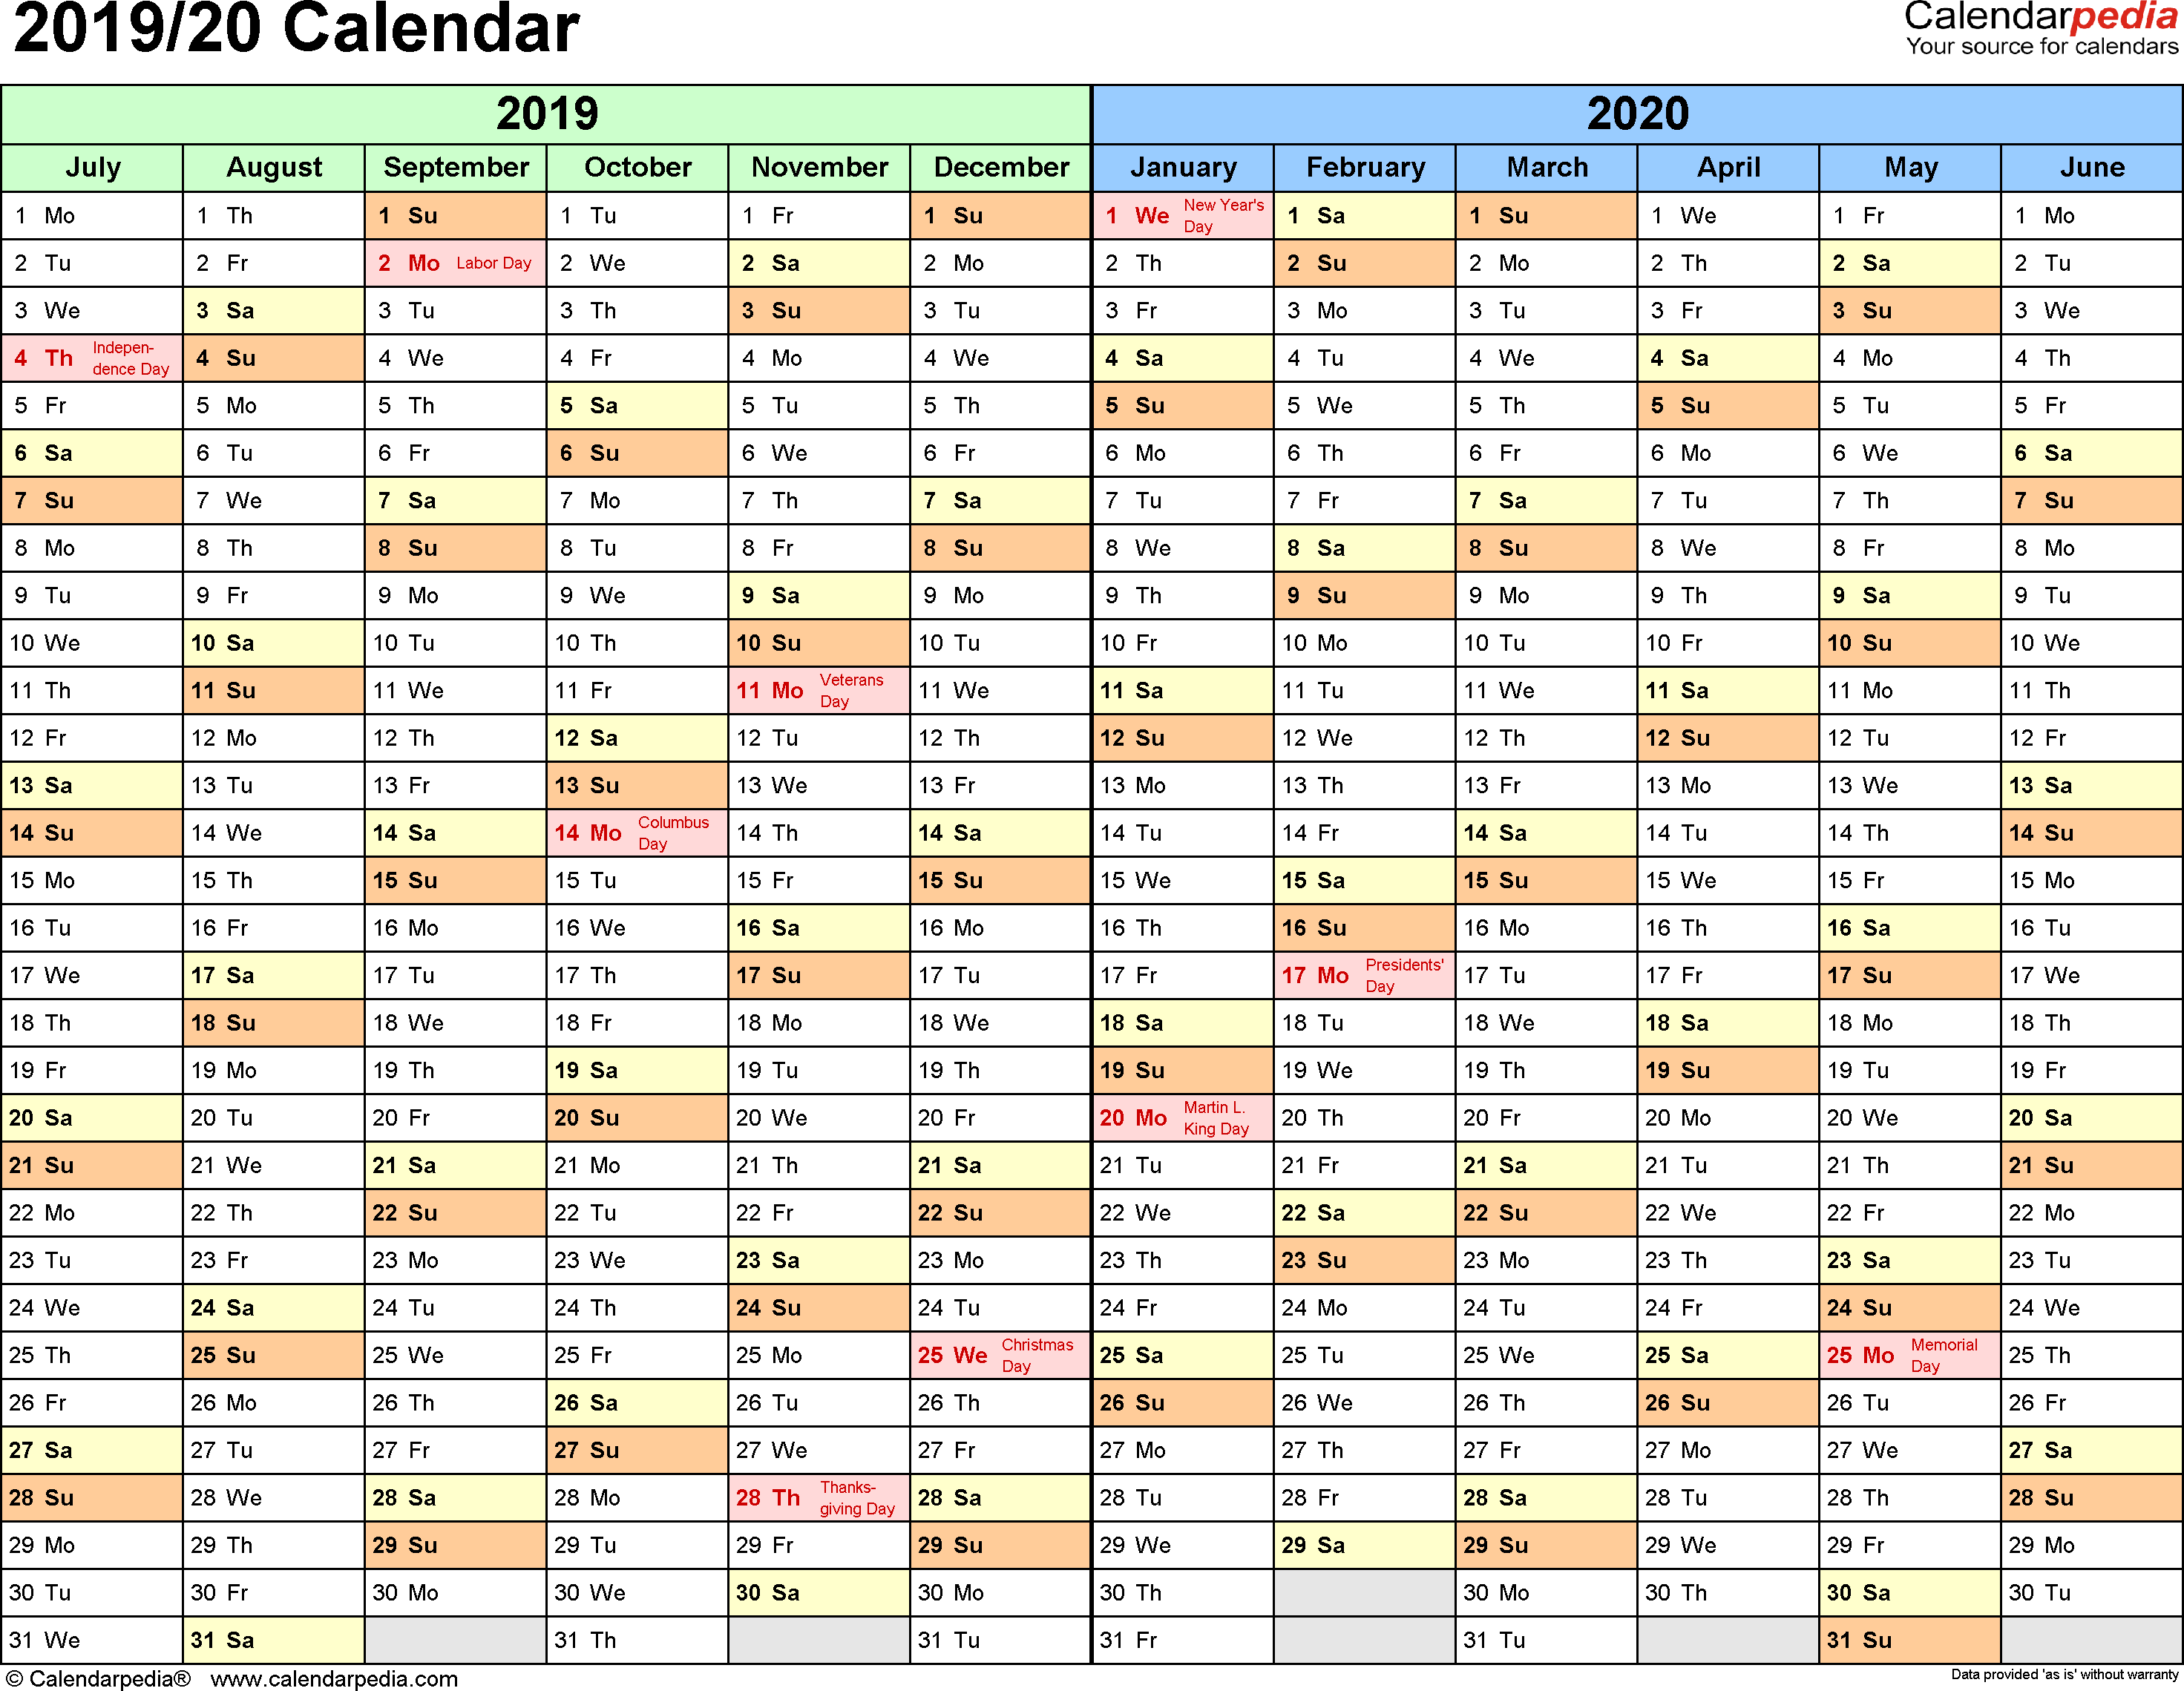 Academic Year Calendar 2019 With Split 20 July To June Excel Templates